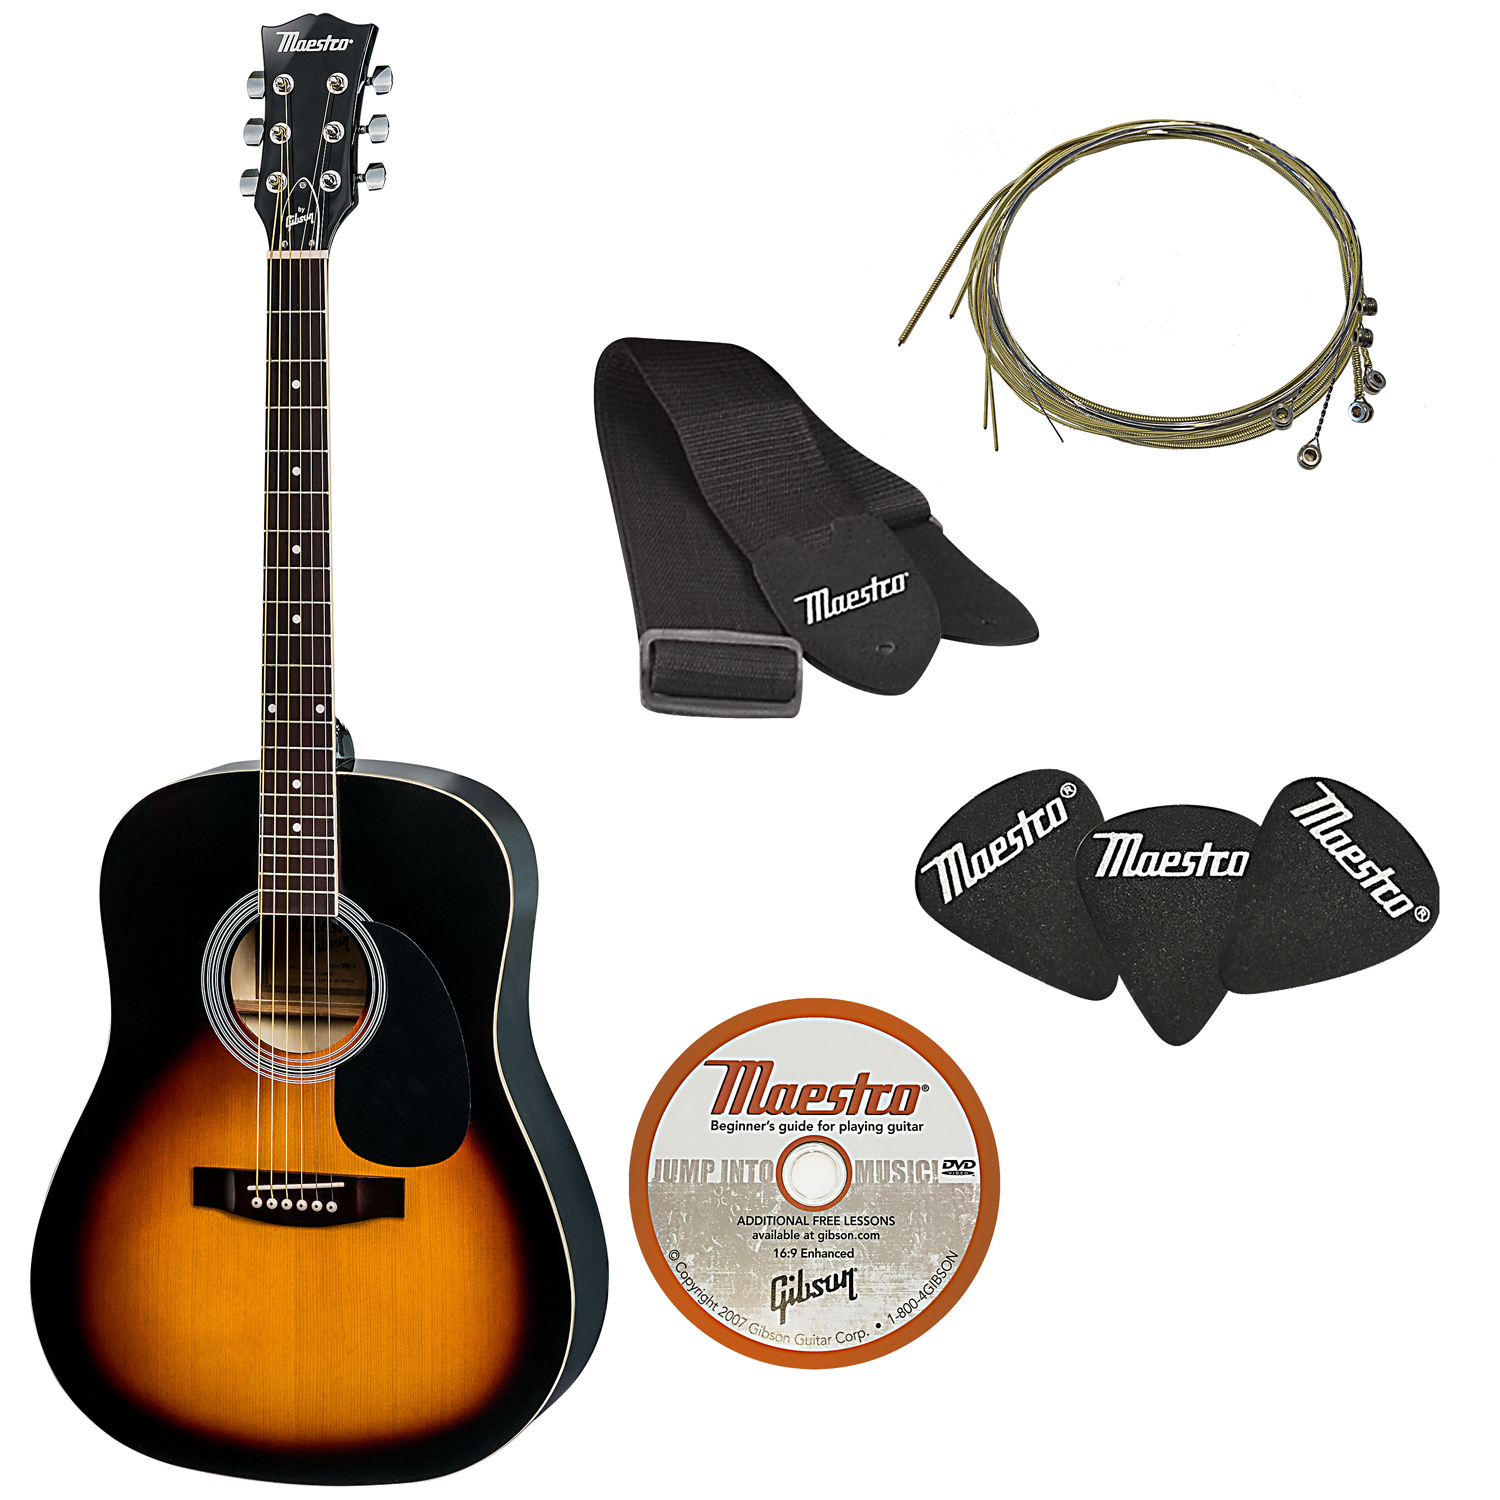 The Maestro by Gibson Full Size Acoustic Guitar Pack, Vintage Sunburst